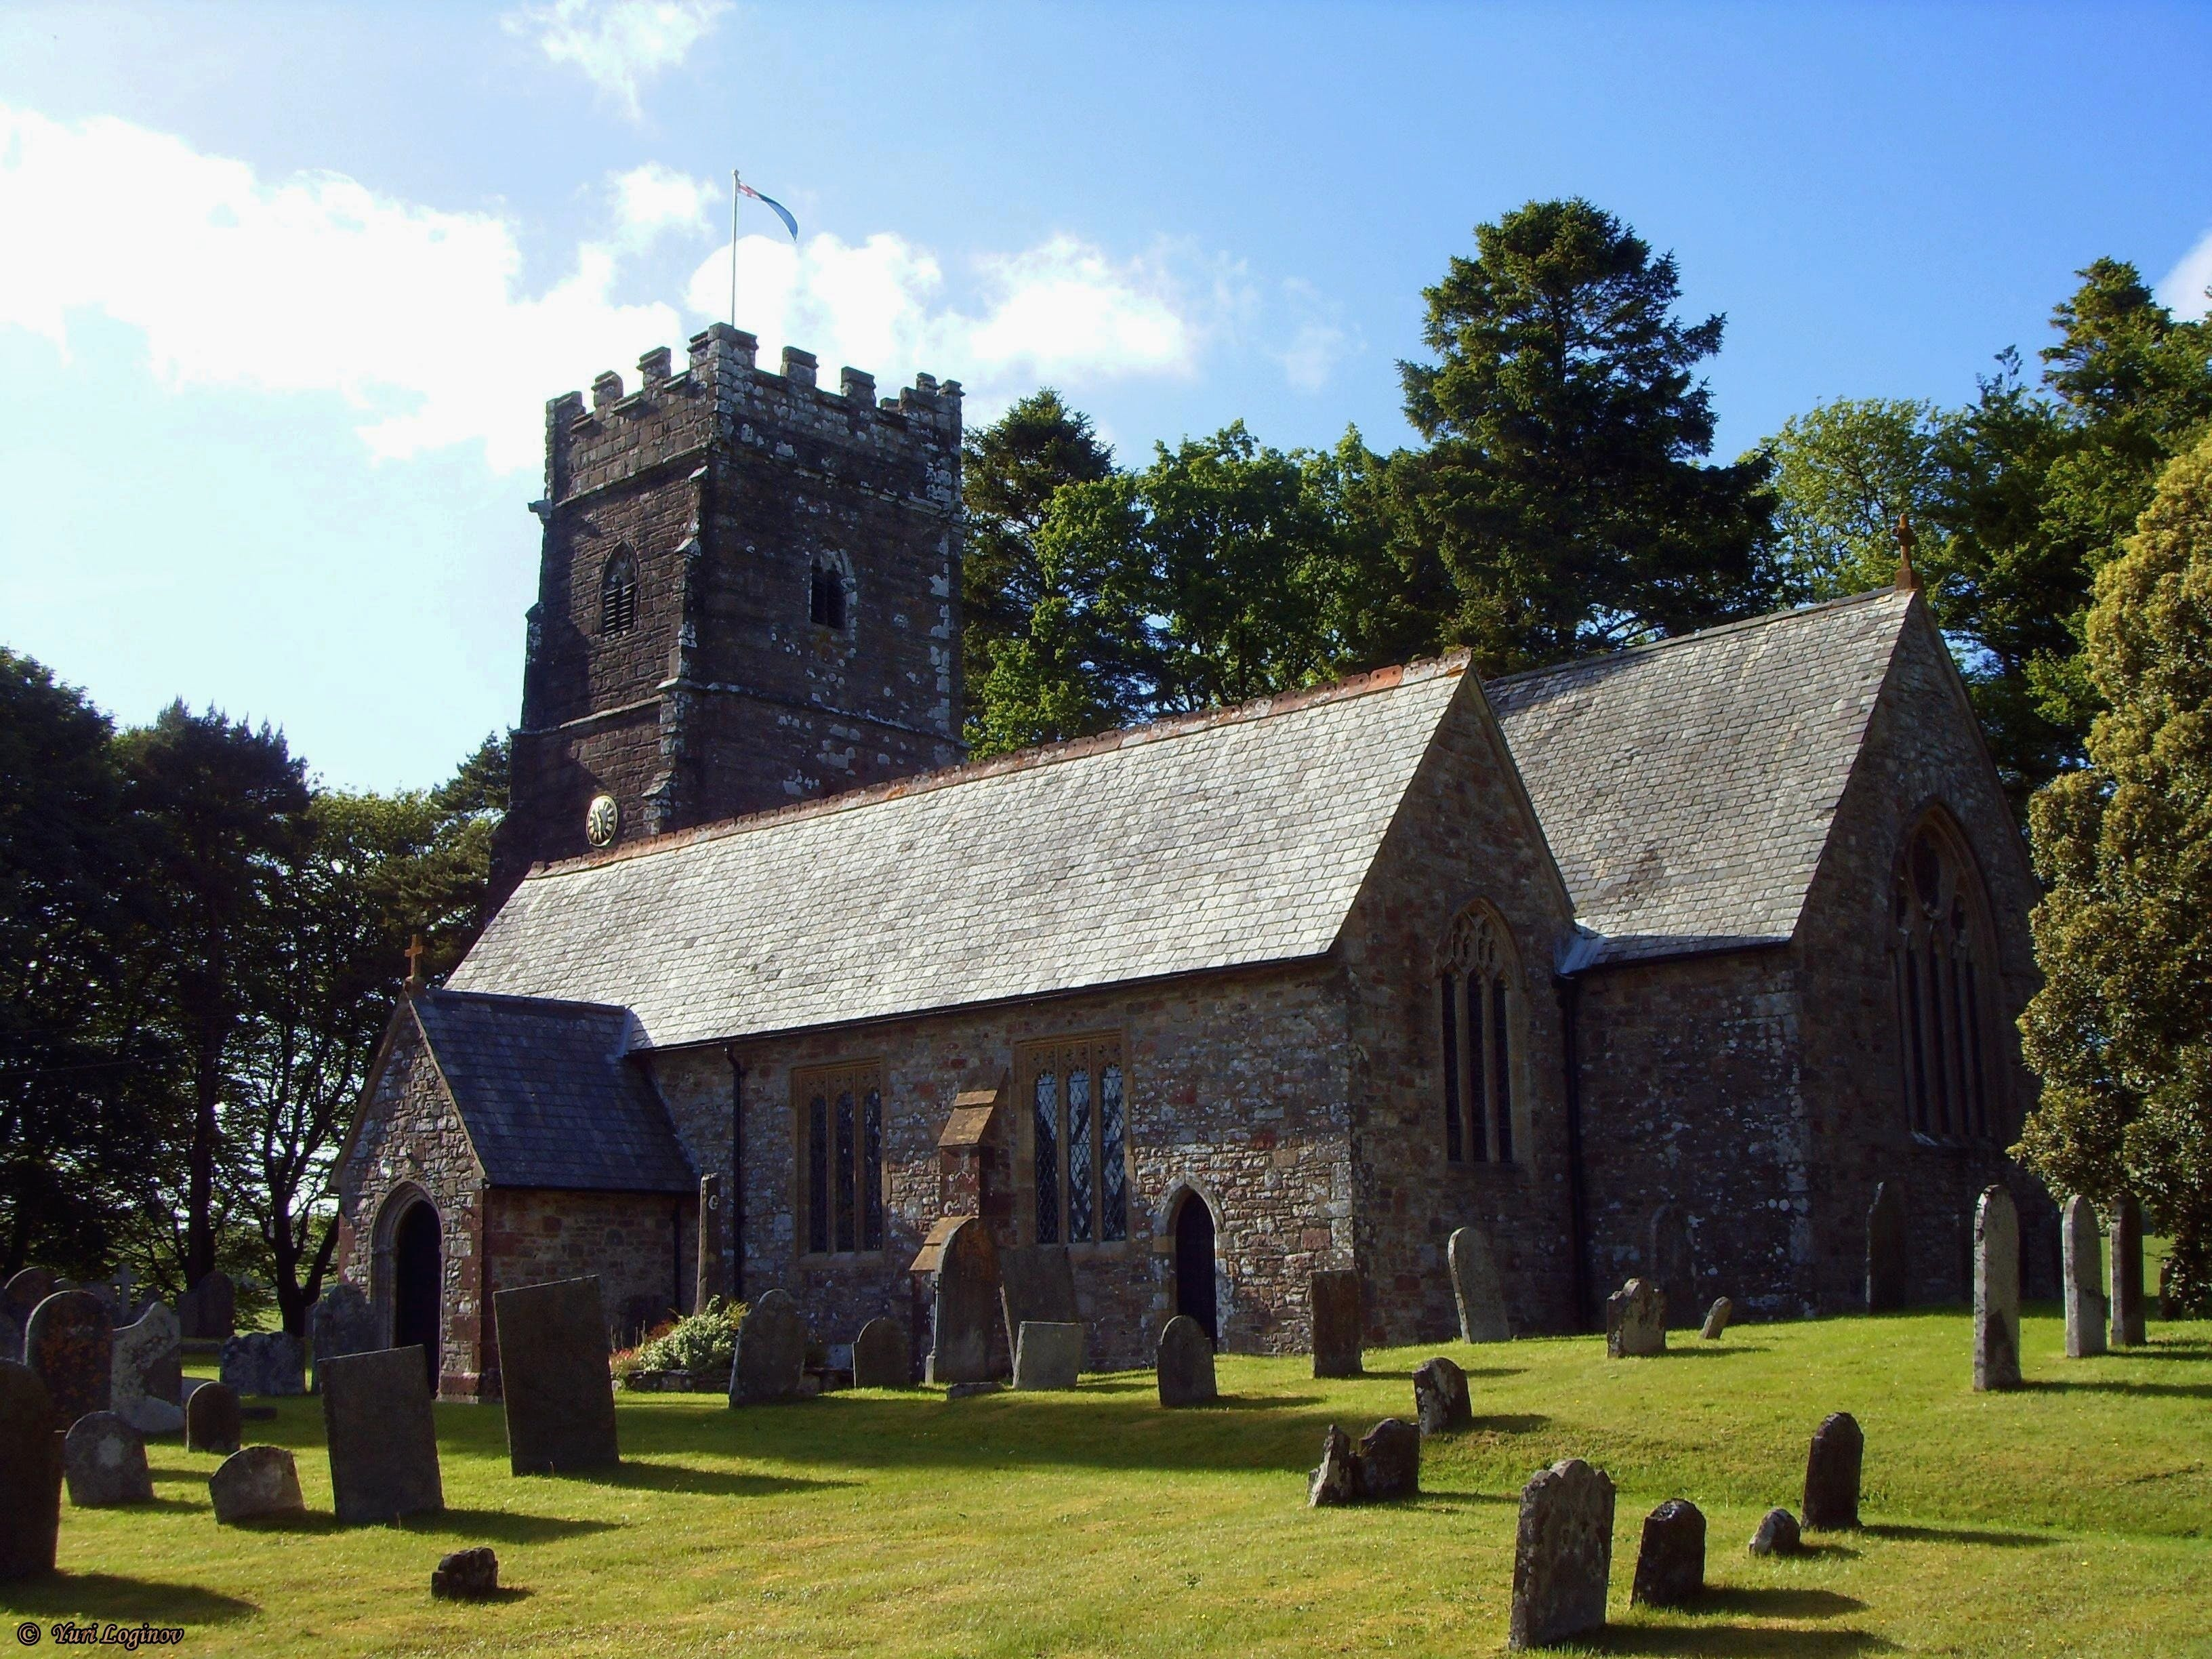 Free stock photo of england, united kingdom, Exford, Church of Saint Mary Magdalene